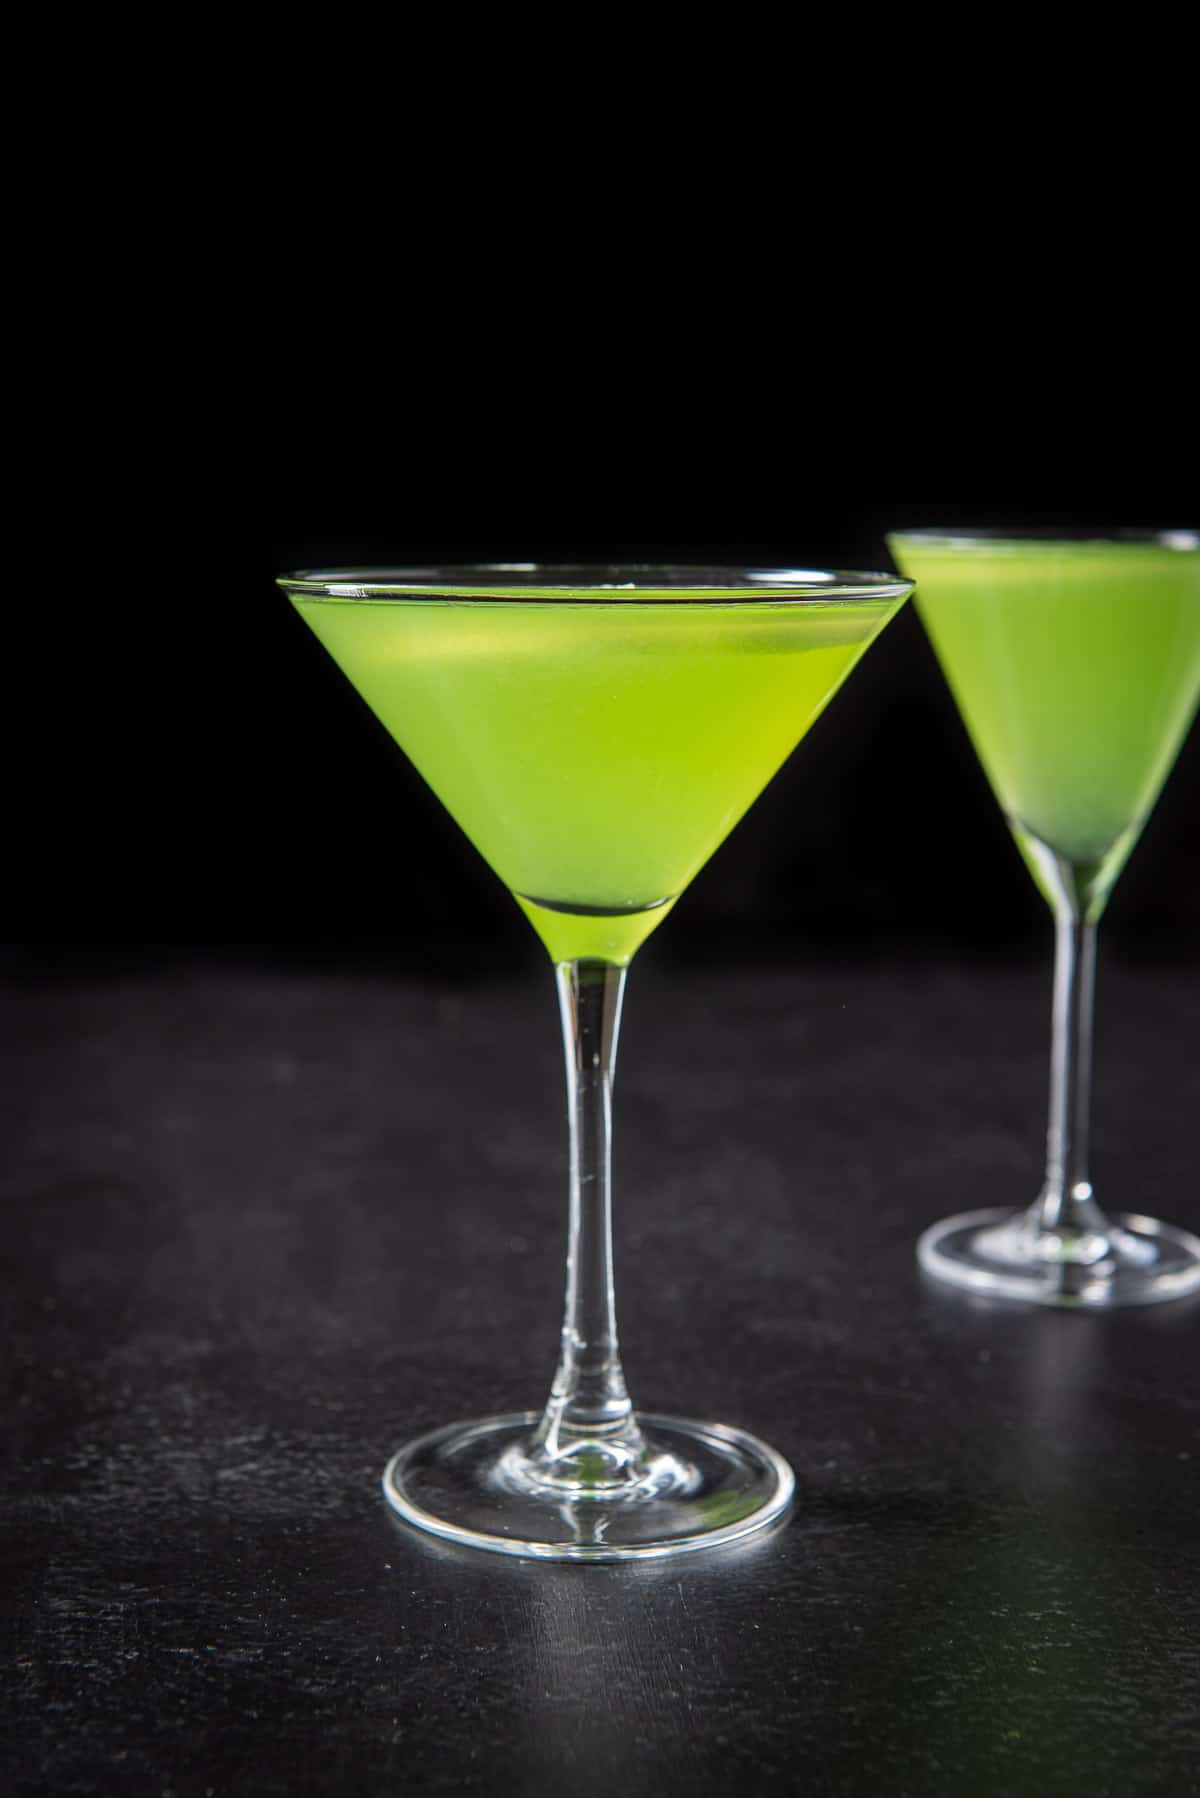 Vertical view of the green cocktail in the classic martini glass